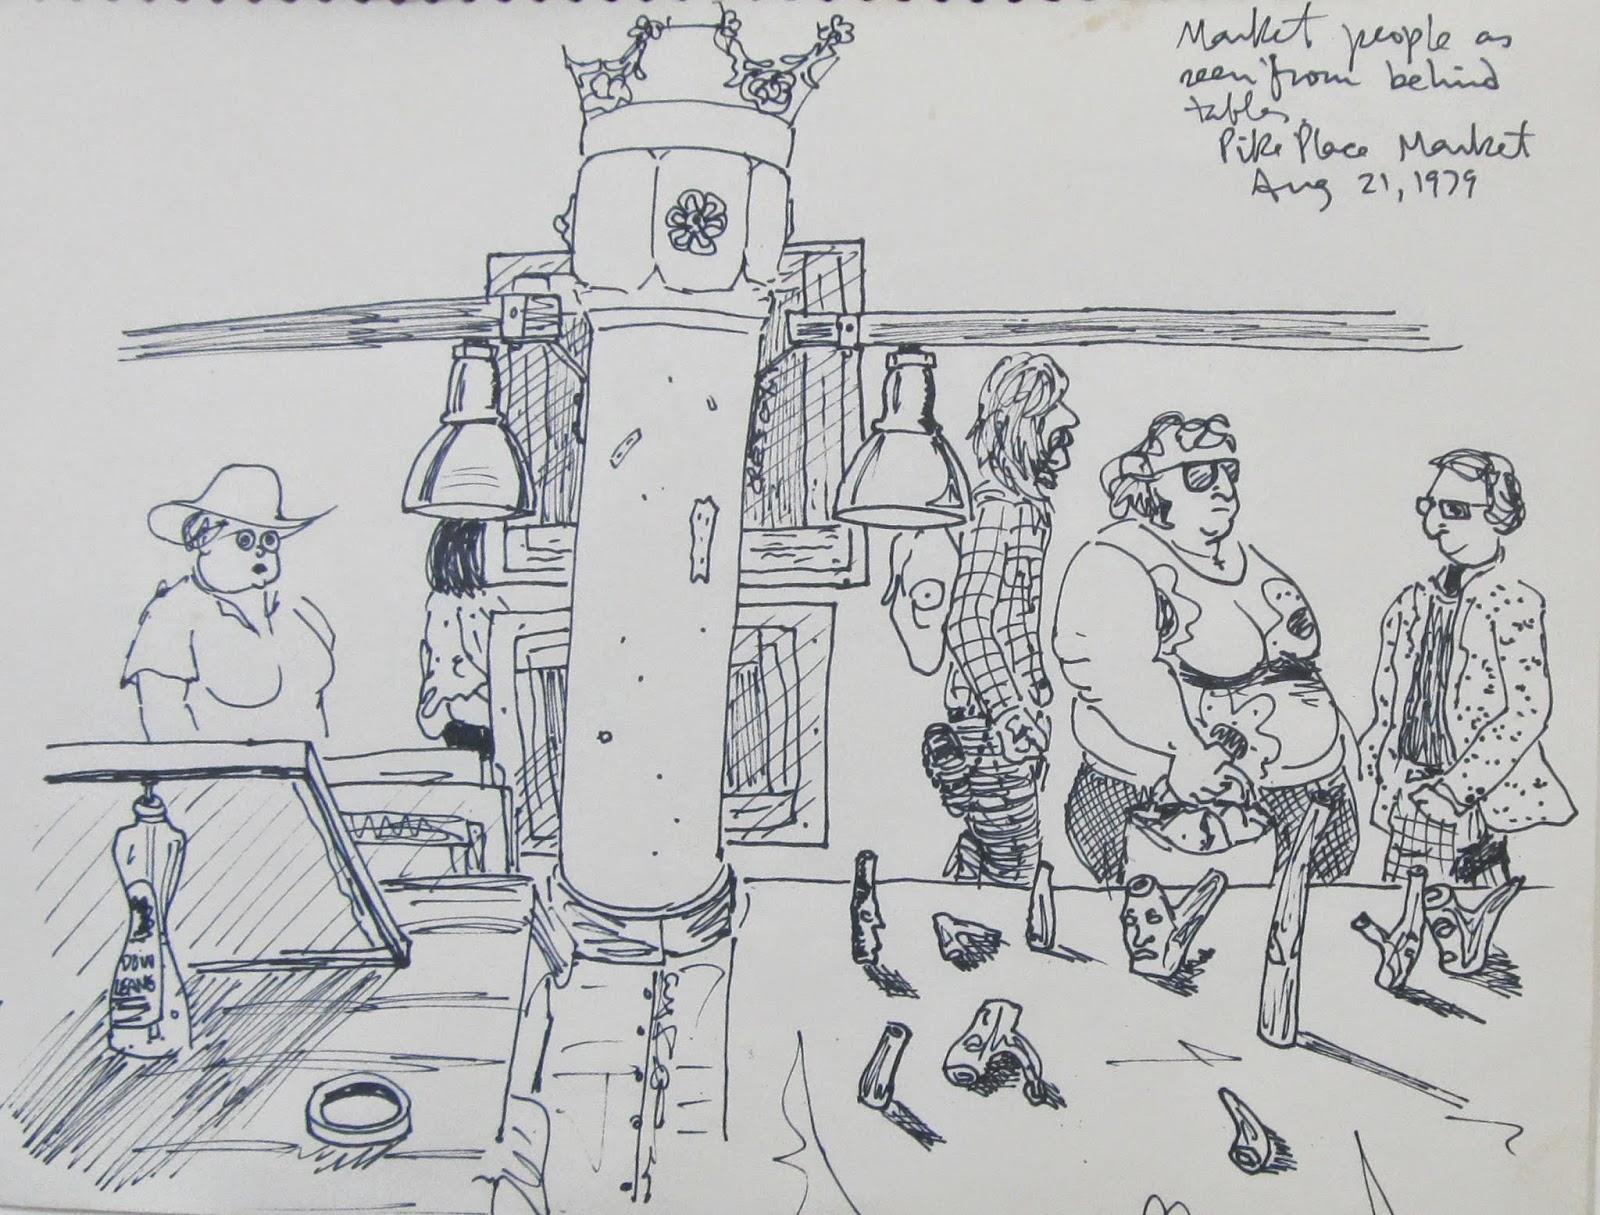 """Market People, Pike Place Market, Seattle."" 8.5 x 11 inches. Pen and Ink. 1979"